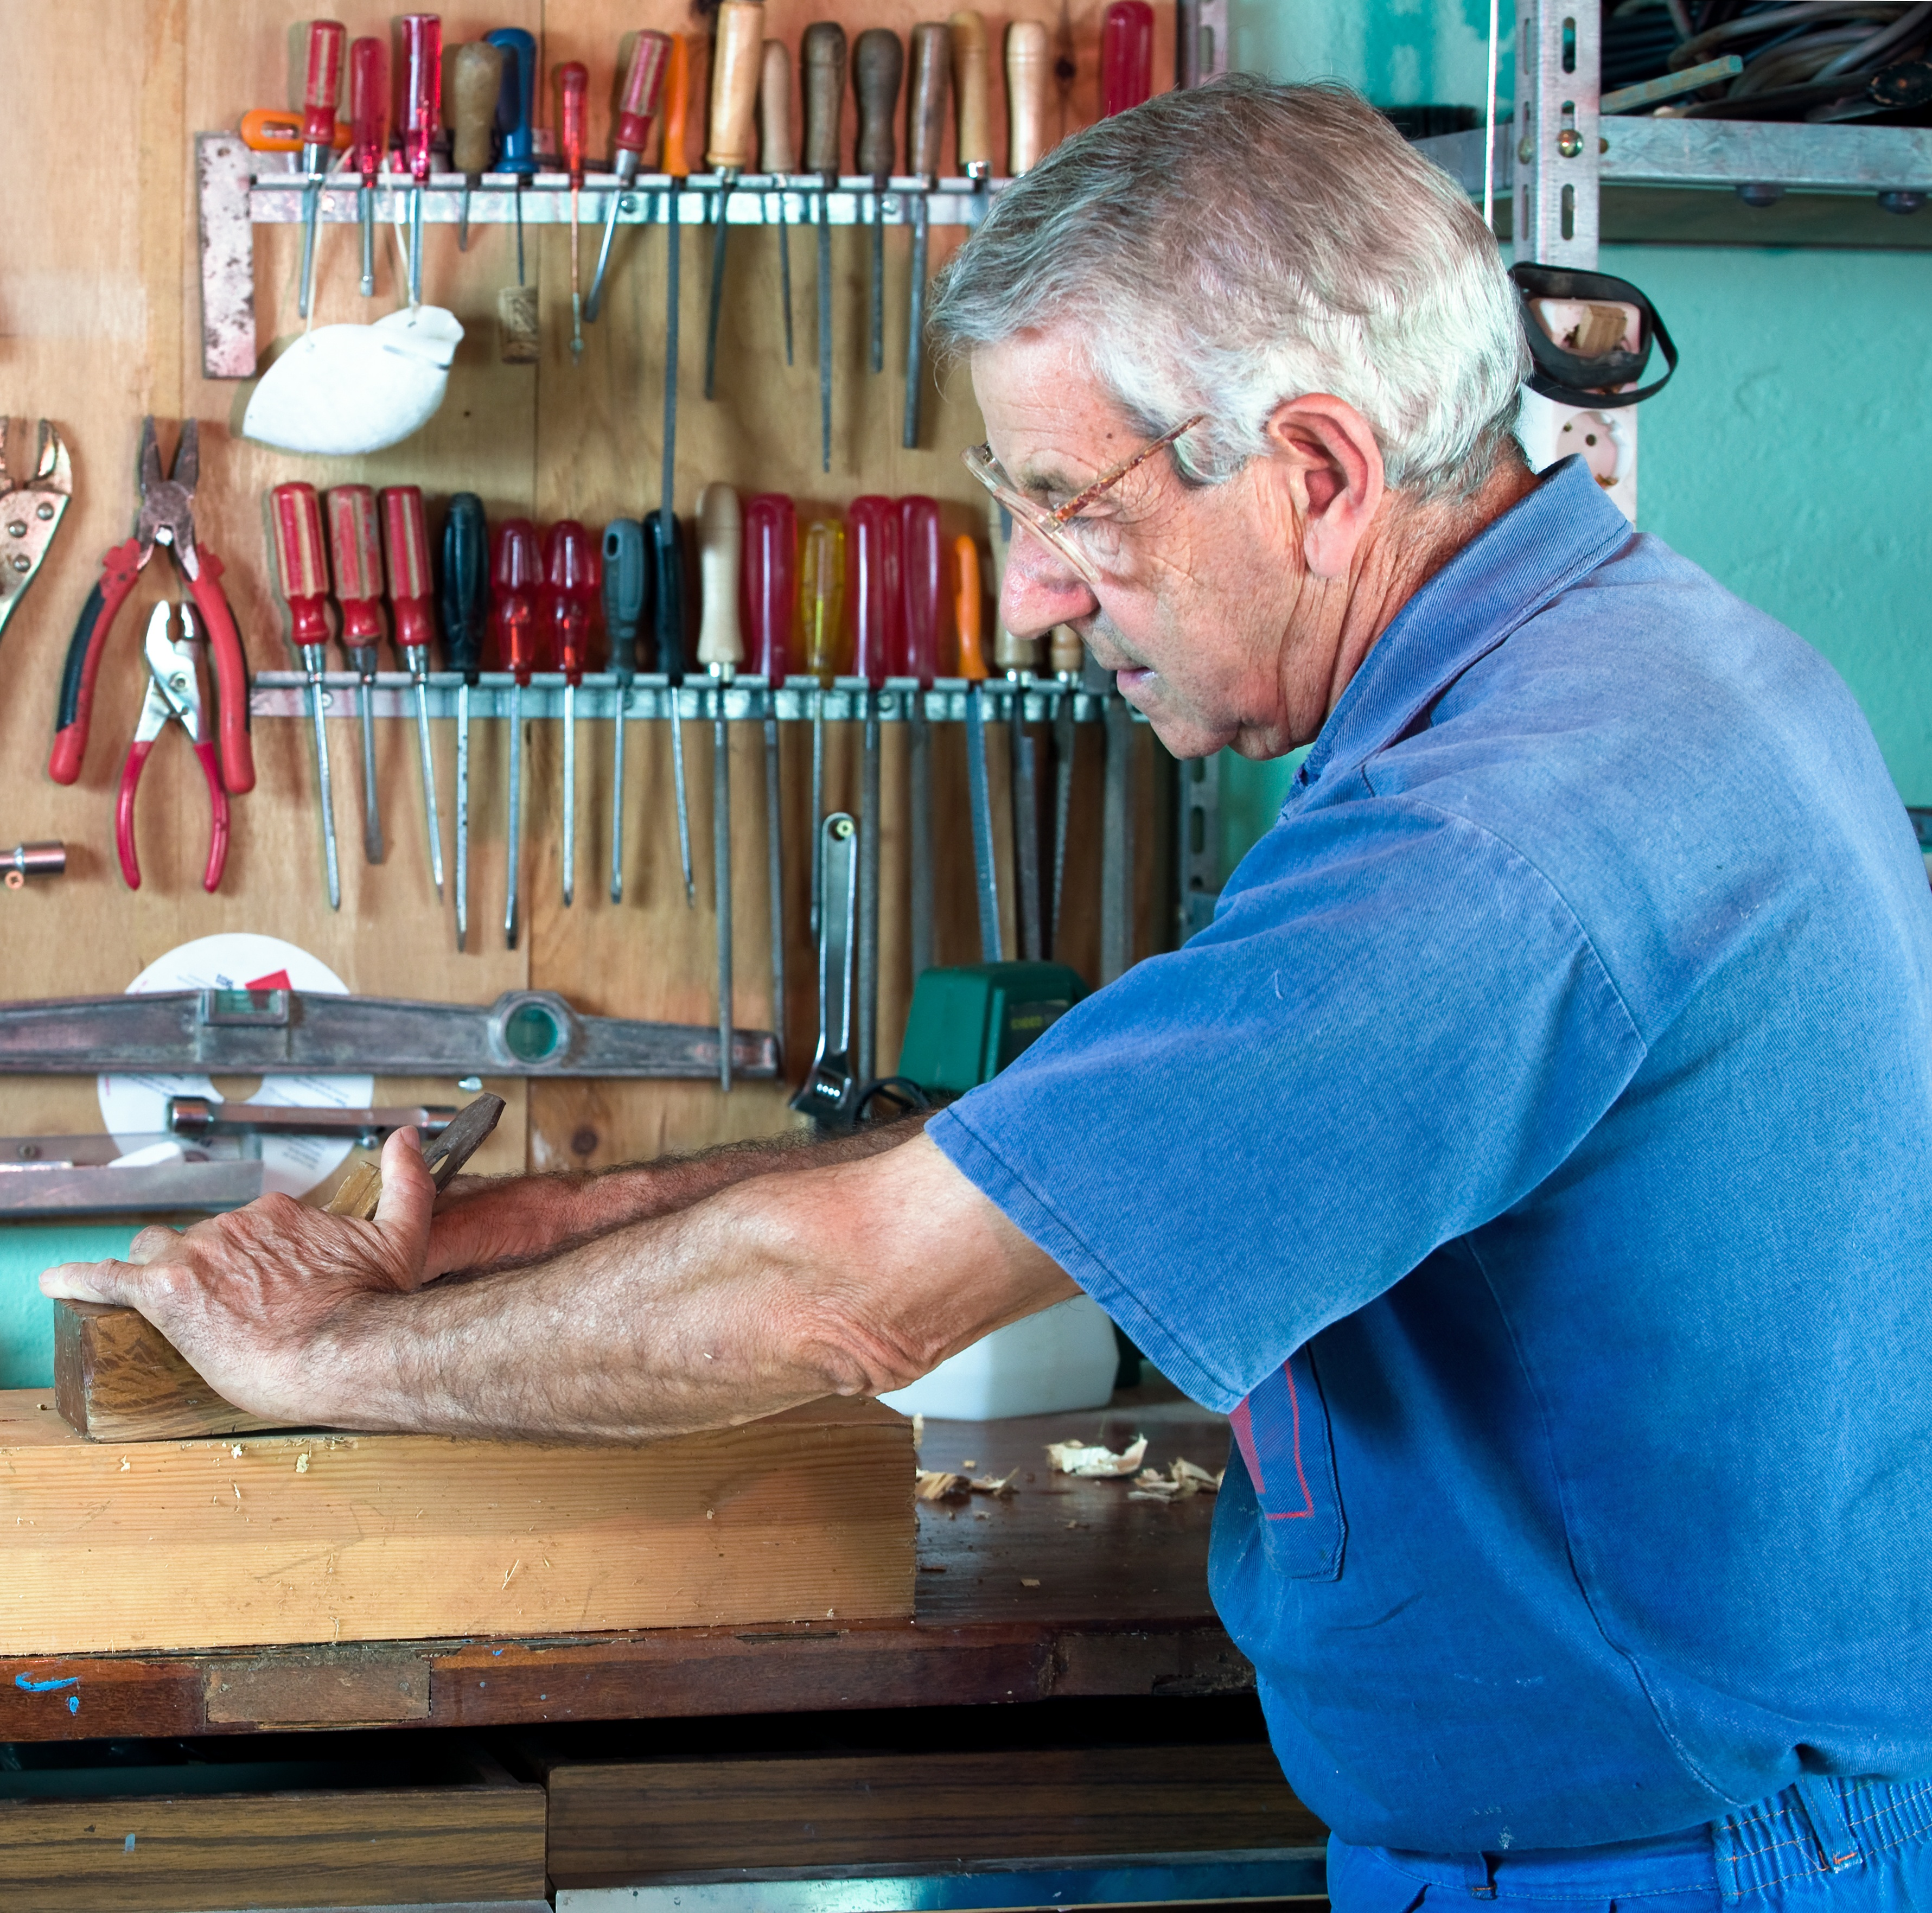 cabinetmaker working in the wood